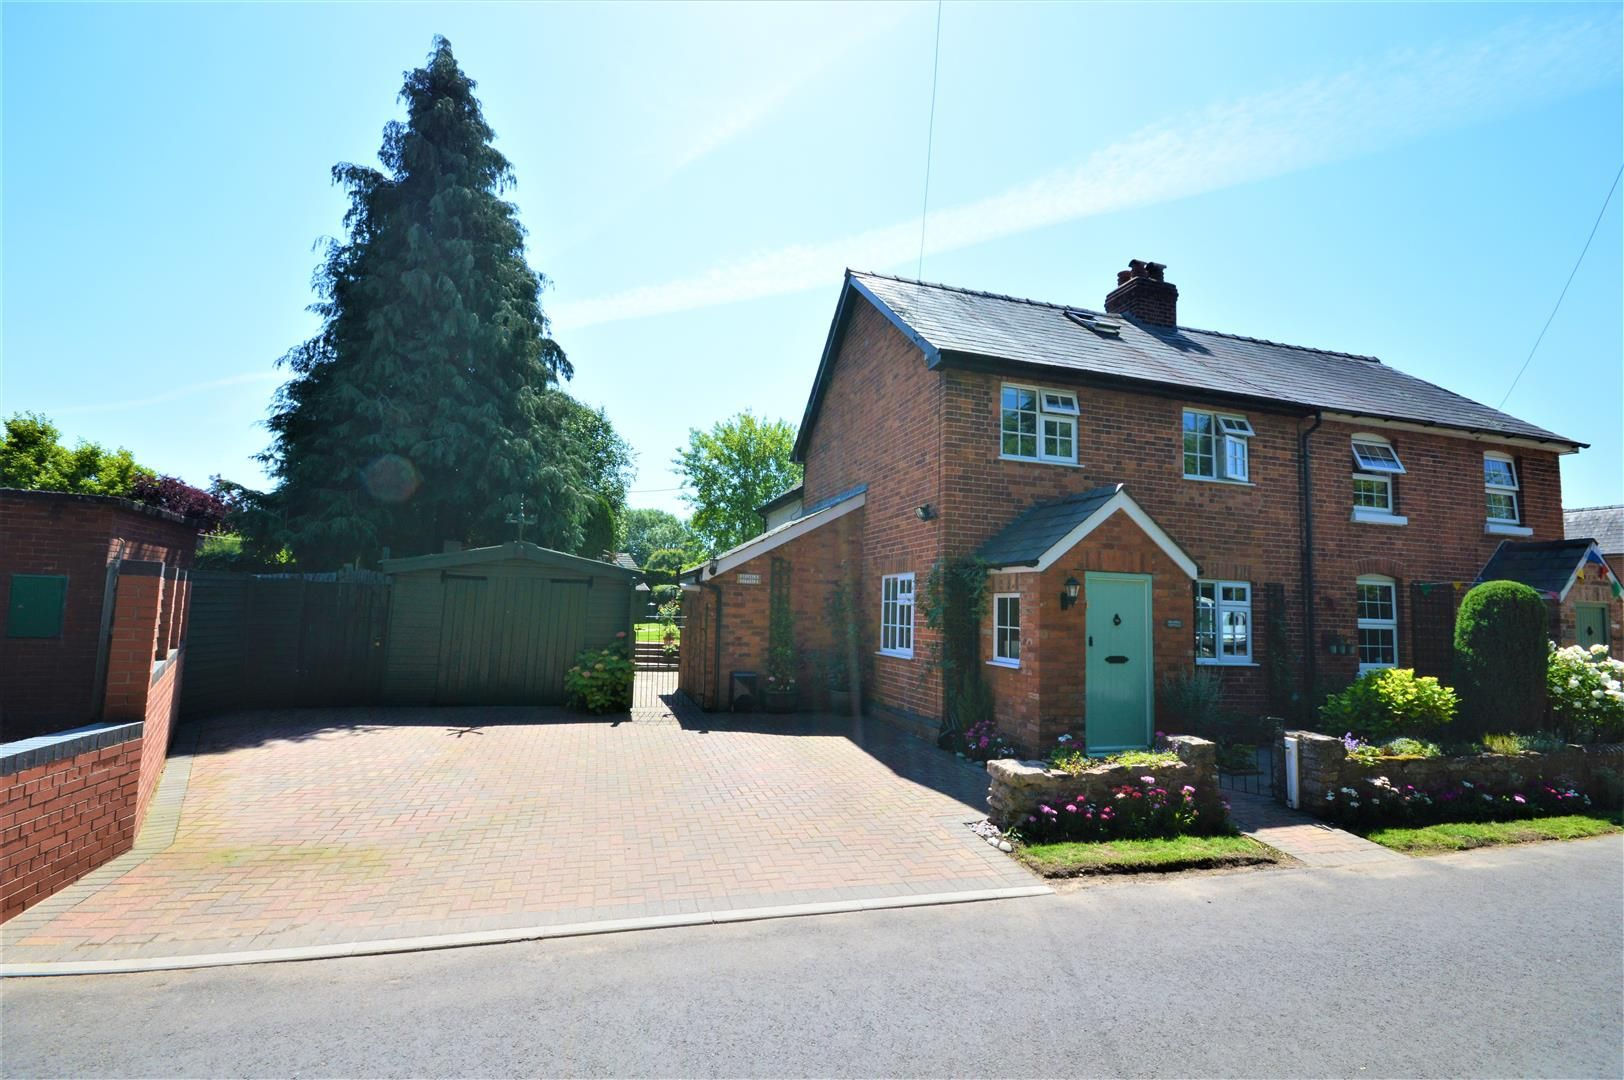 3 bed semi-detached for sale in Madley 1